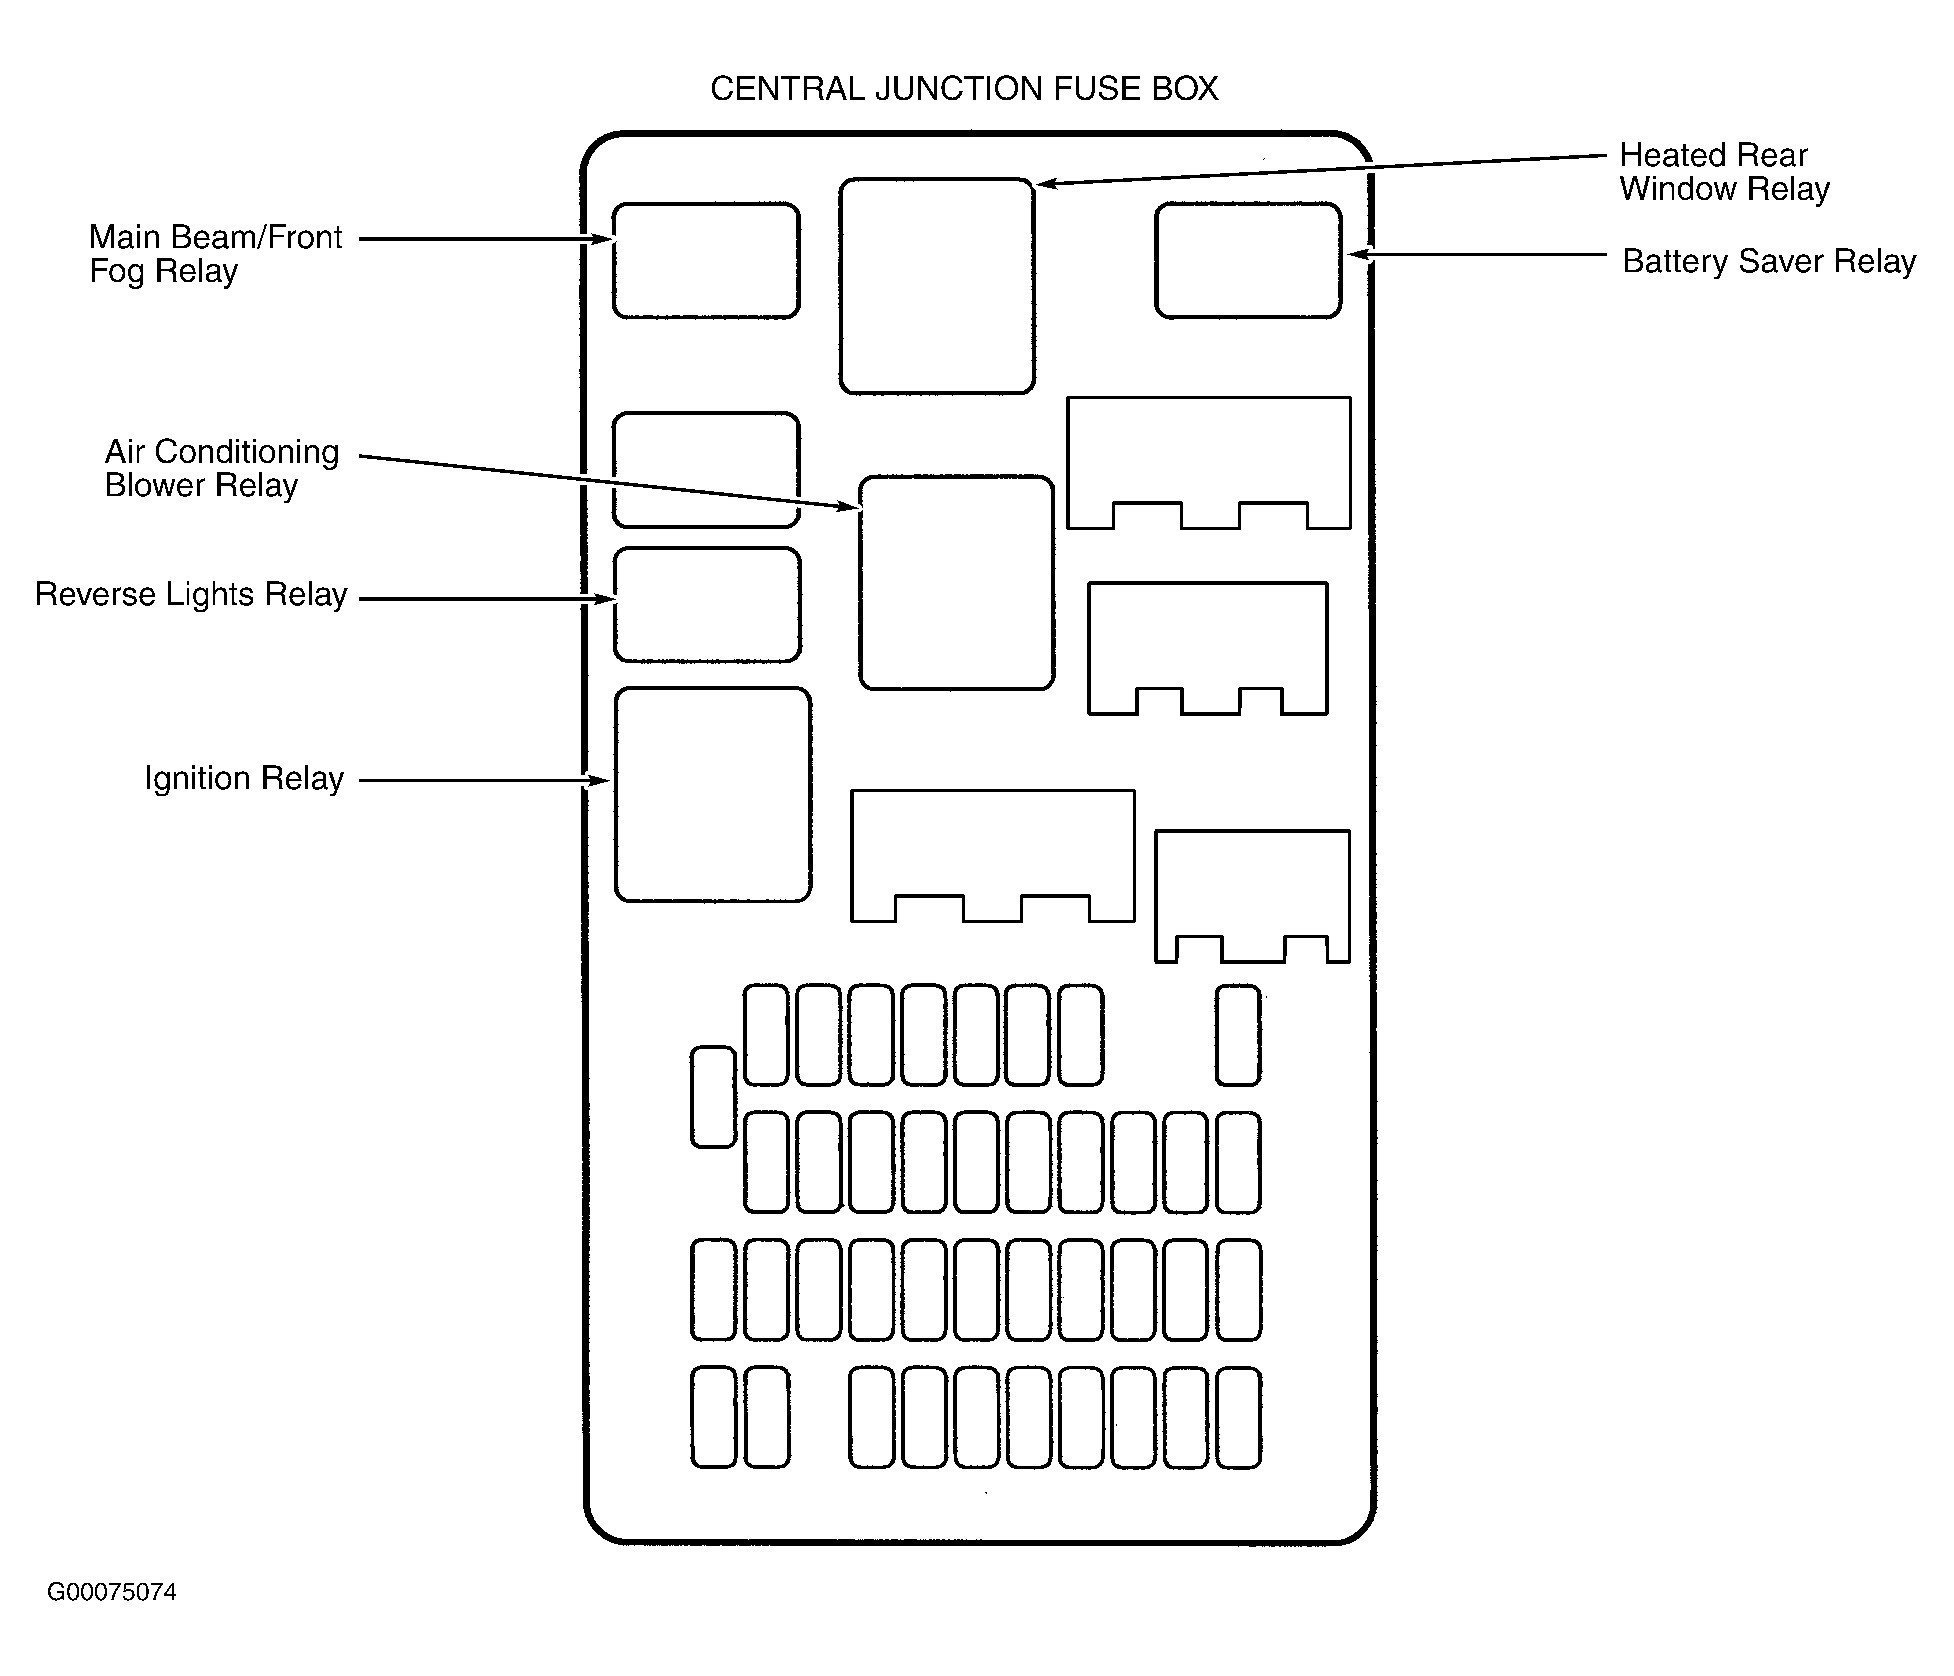 Fuse and Relay Diagram for 2000 Jaguar S-type 3.0 V6 Diagram] Jaguar S Type 2007 Wiring Diagram Full Version Hd Of Fuse and Relay Diagram for 2000 Jaguar S-type 3.0 V6